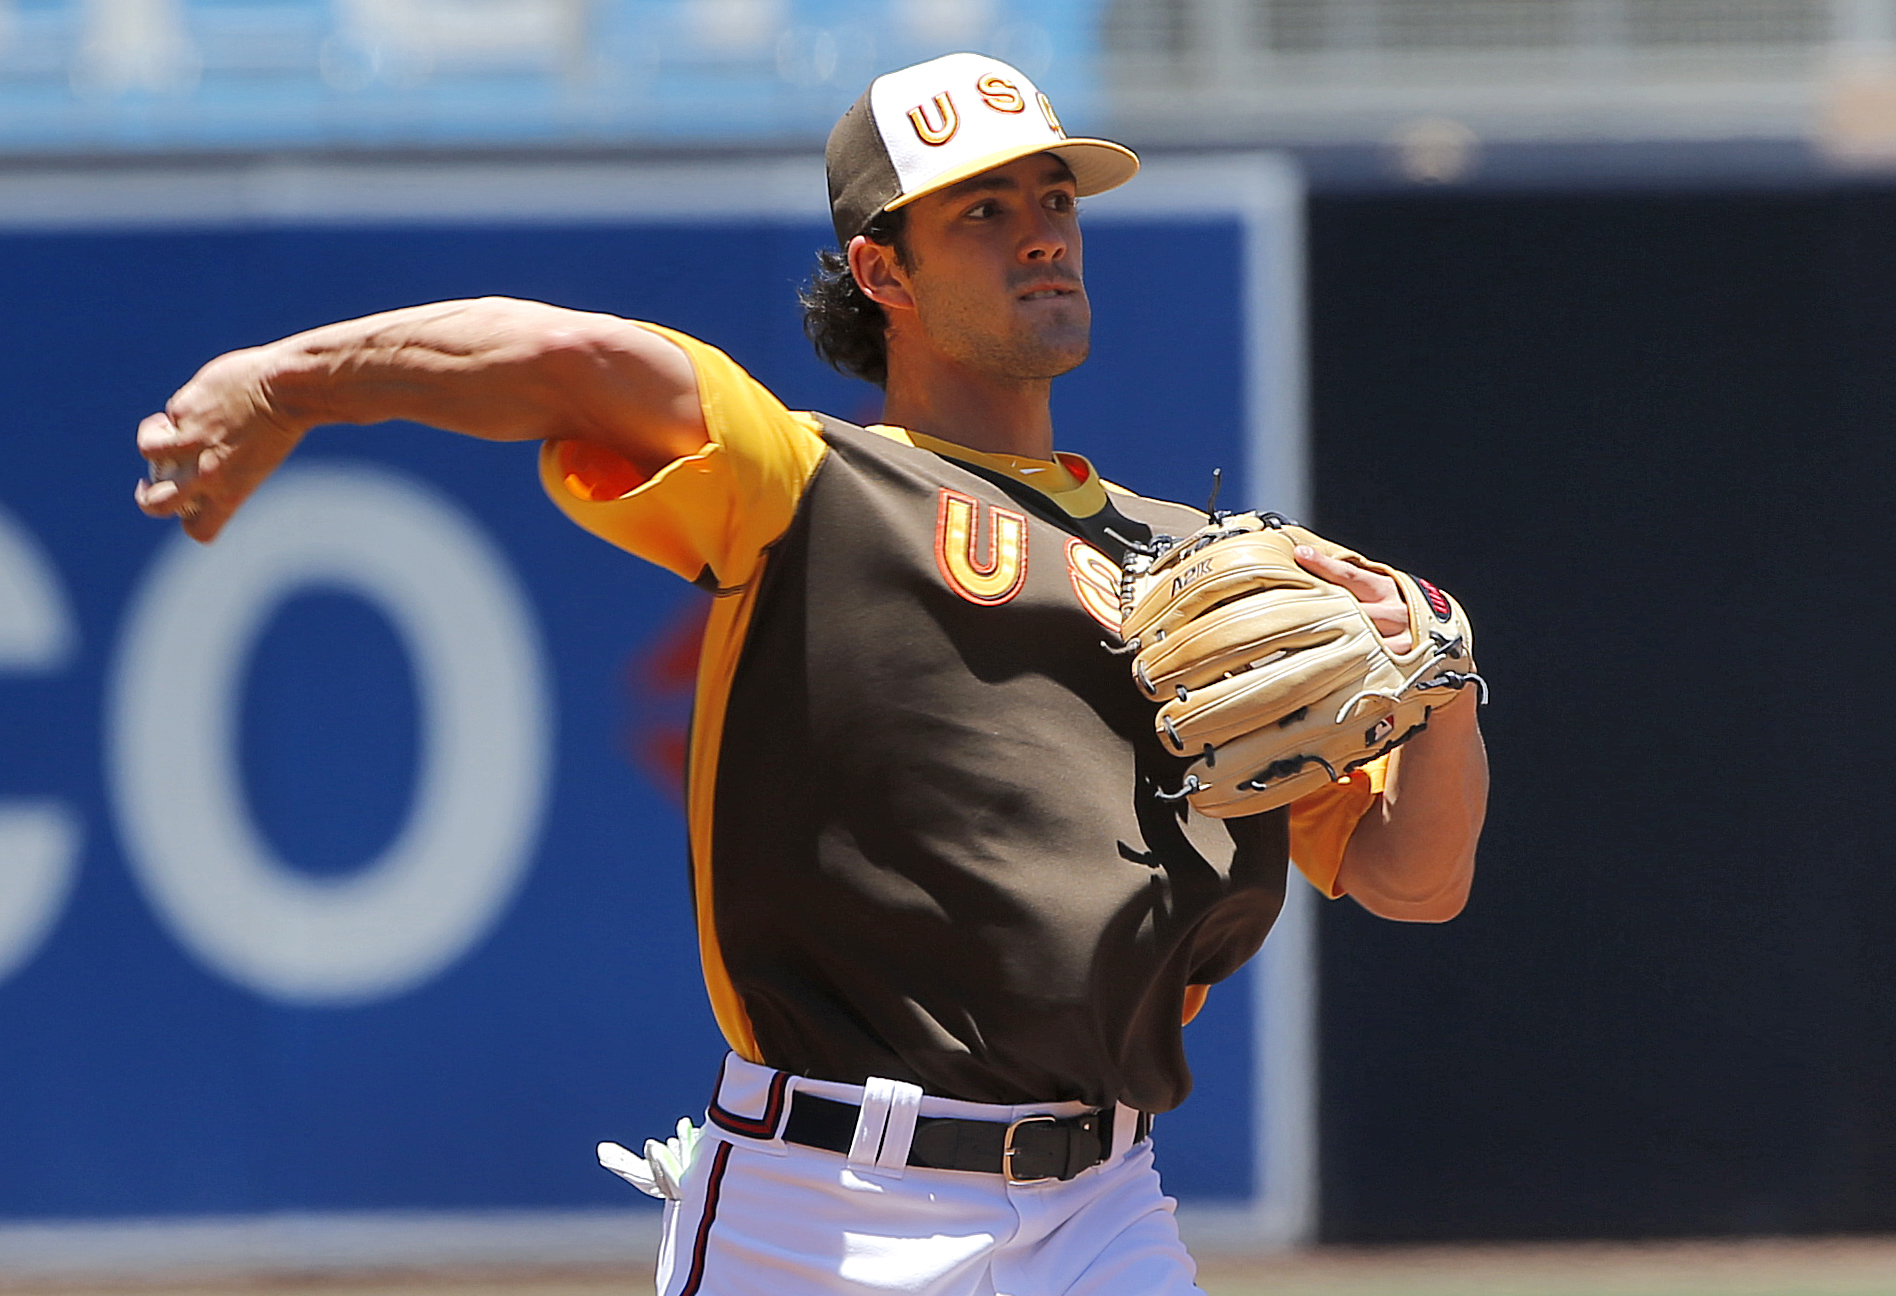 U.S team's Dansby Swanson, of the Atlanta Braves, warms up prior to the All-Star Futures baseball game against the World team, Sunday, July 10, 2016, in San Diego. (AP Photo/Lenny Ignelzi)